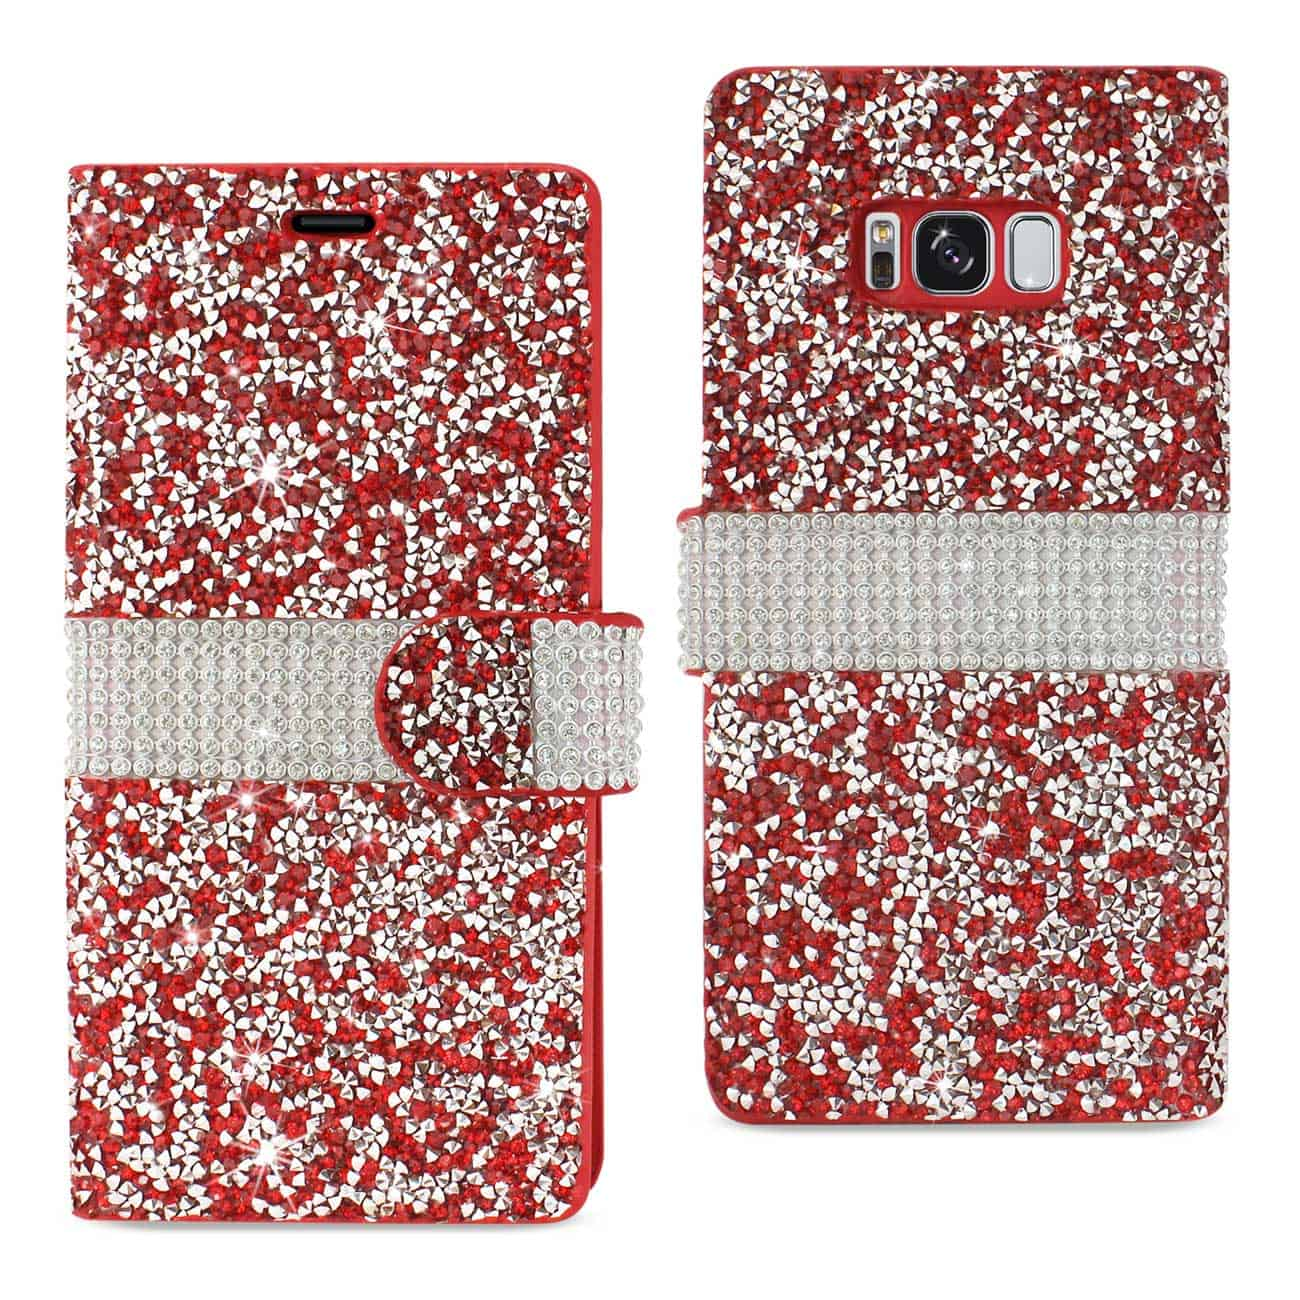 SAMSUNG GALAXY S8/ SM DIAMOND RHINESTONE WALLET CASE IN RED